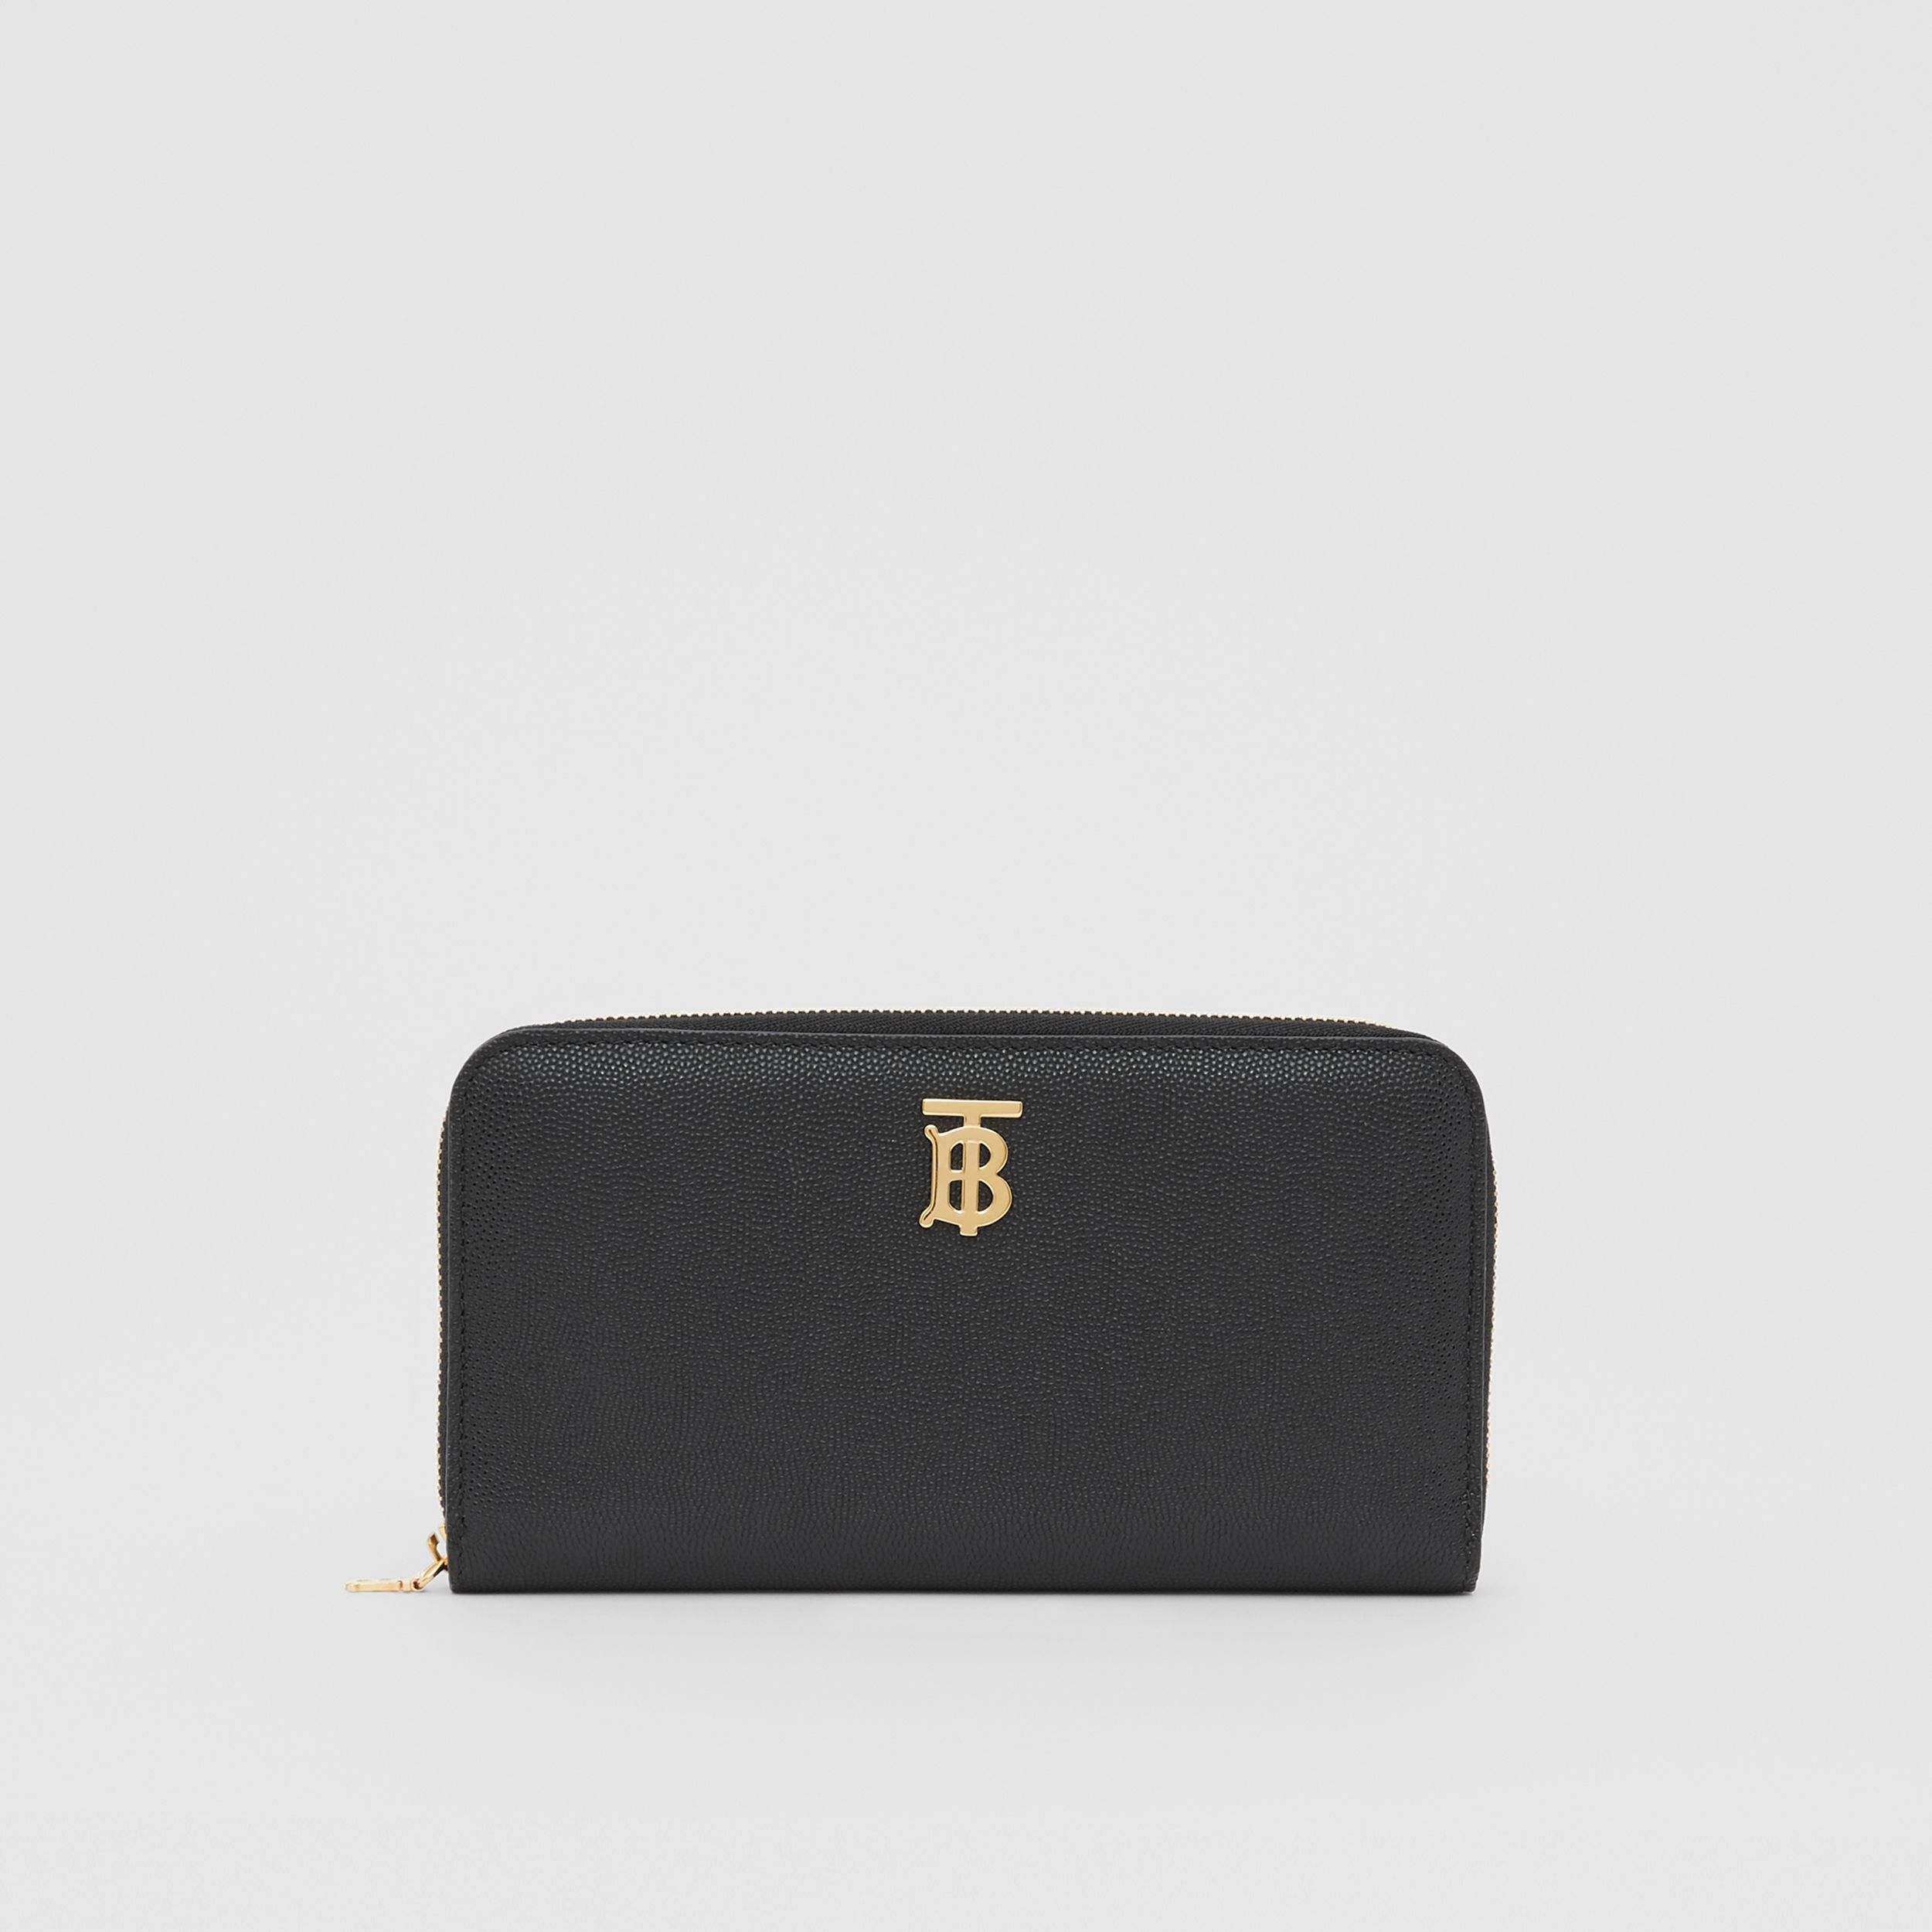 Monogram Motif Grainy Leather Ziparound Wallet in Black - Women | Burberry United States - 1